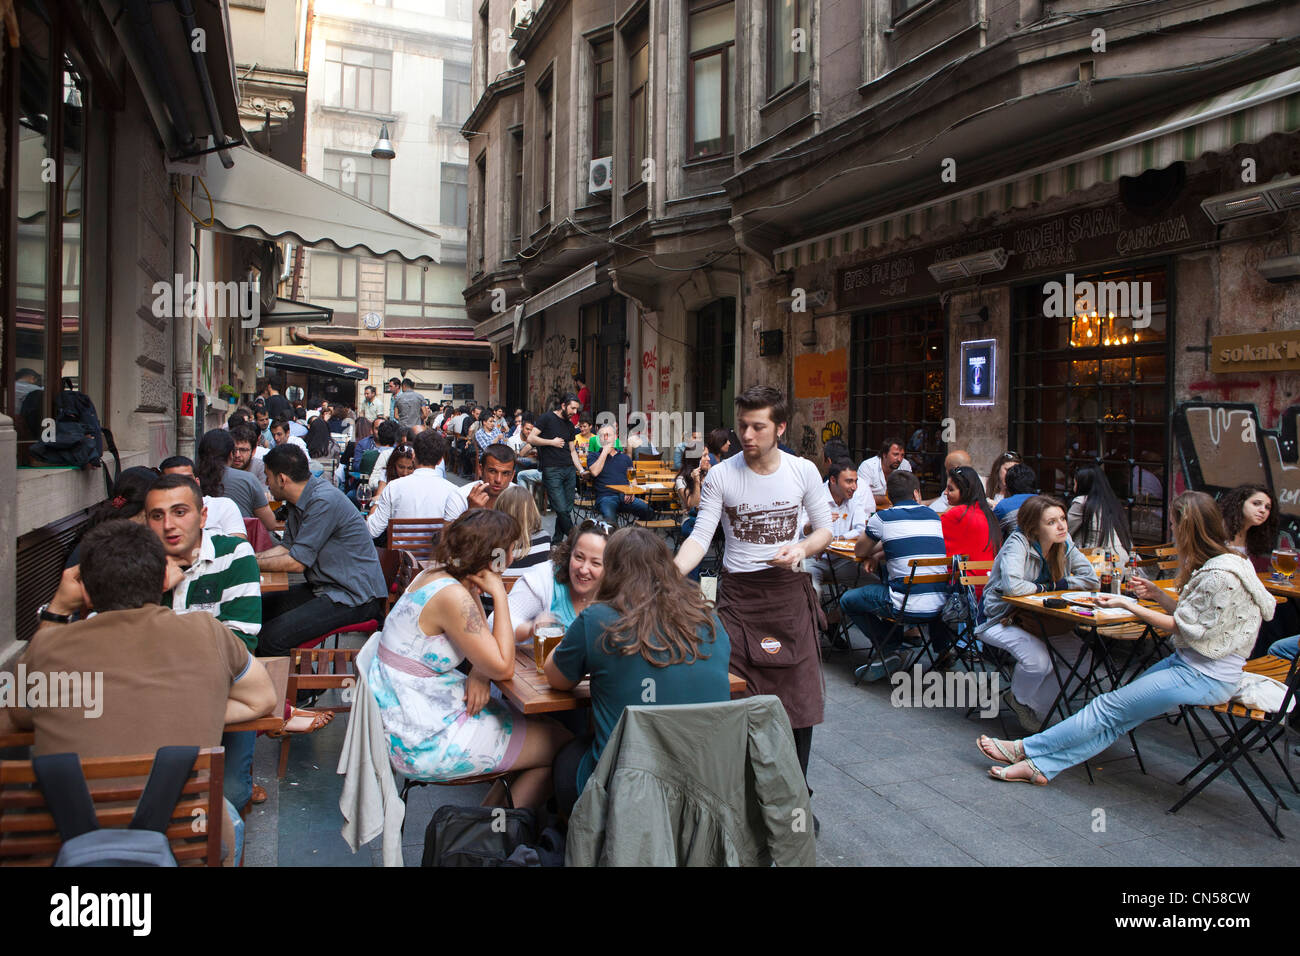 Turkey, Istanbul, Beyoglu, Tünel district, cafes, bars and restaurants in the narrow streets around Istiklal - Stock Image